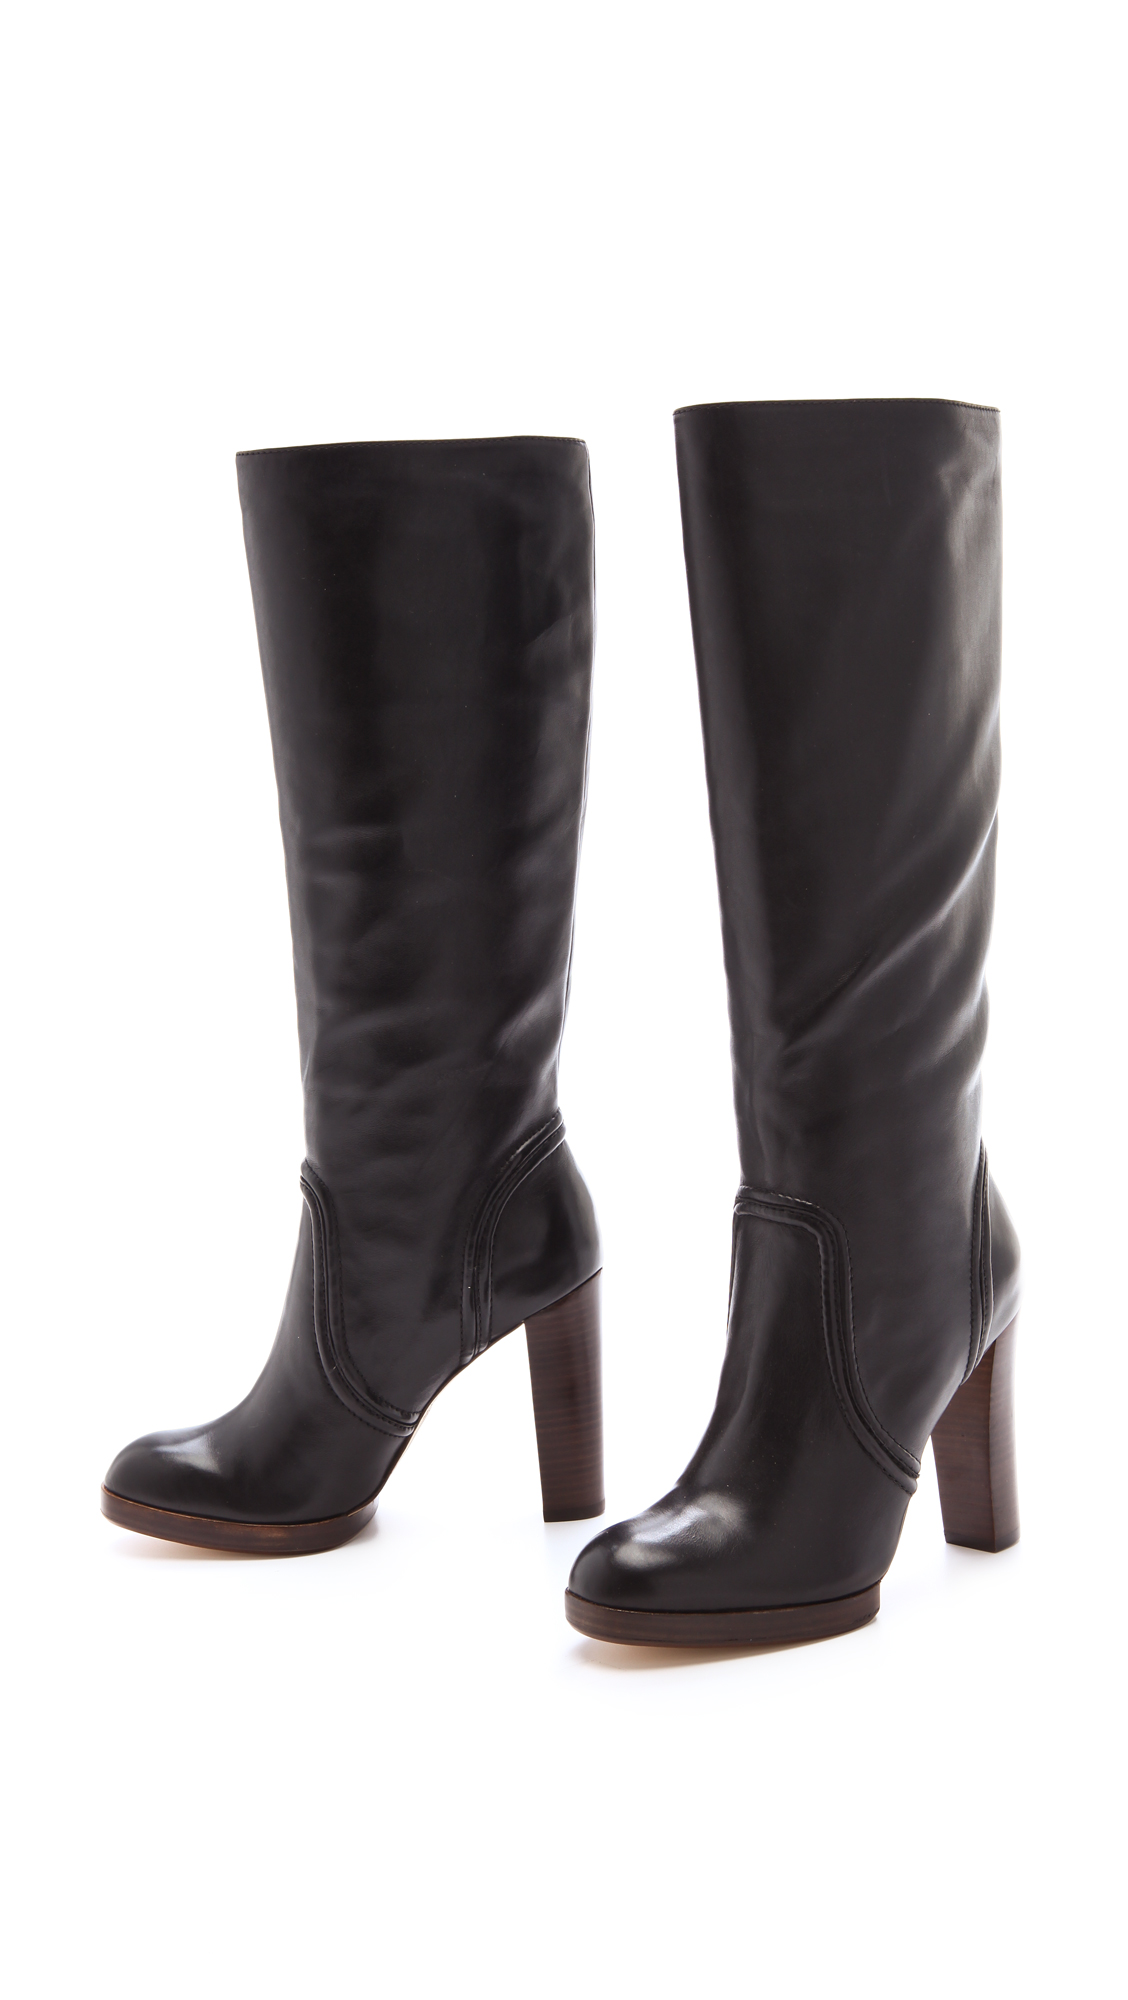 kors by michael kors aila high heel boots in black lyst